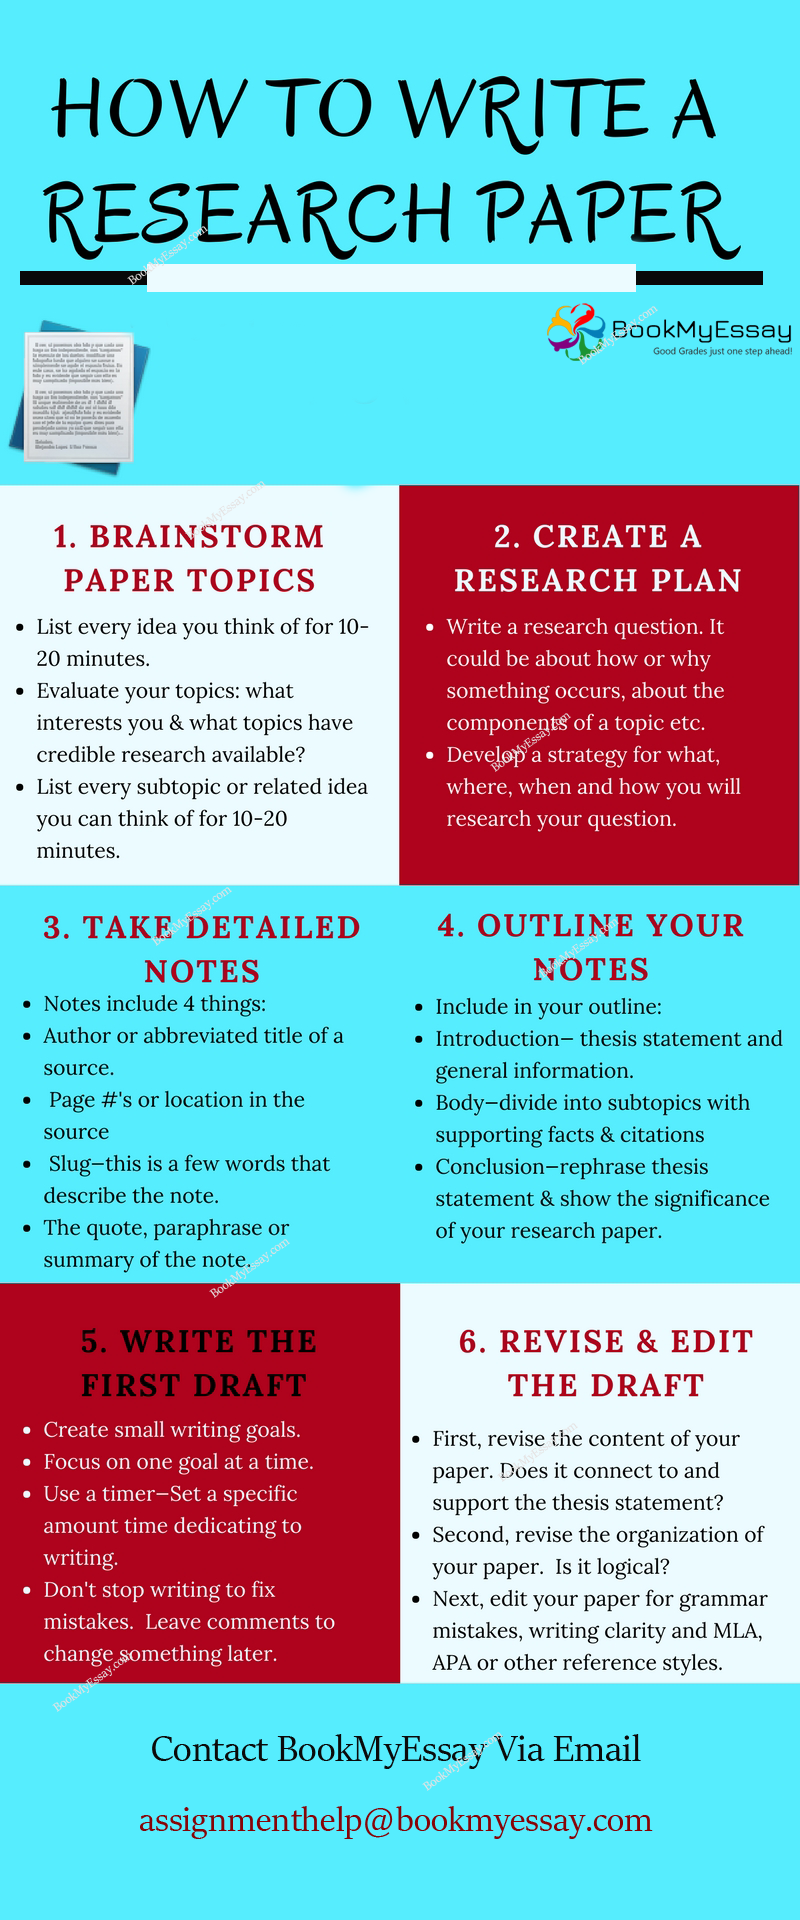 003 Research Paper Writing Service Dreaded Services In India Online Chennai Full